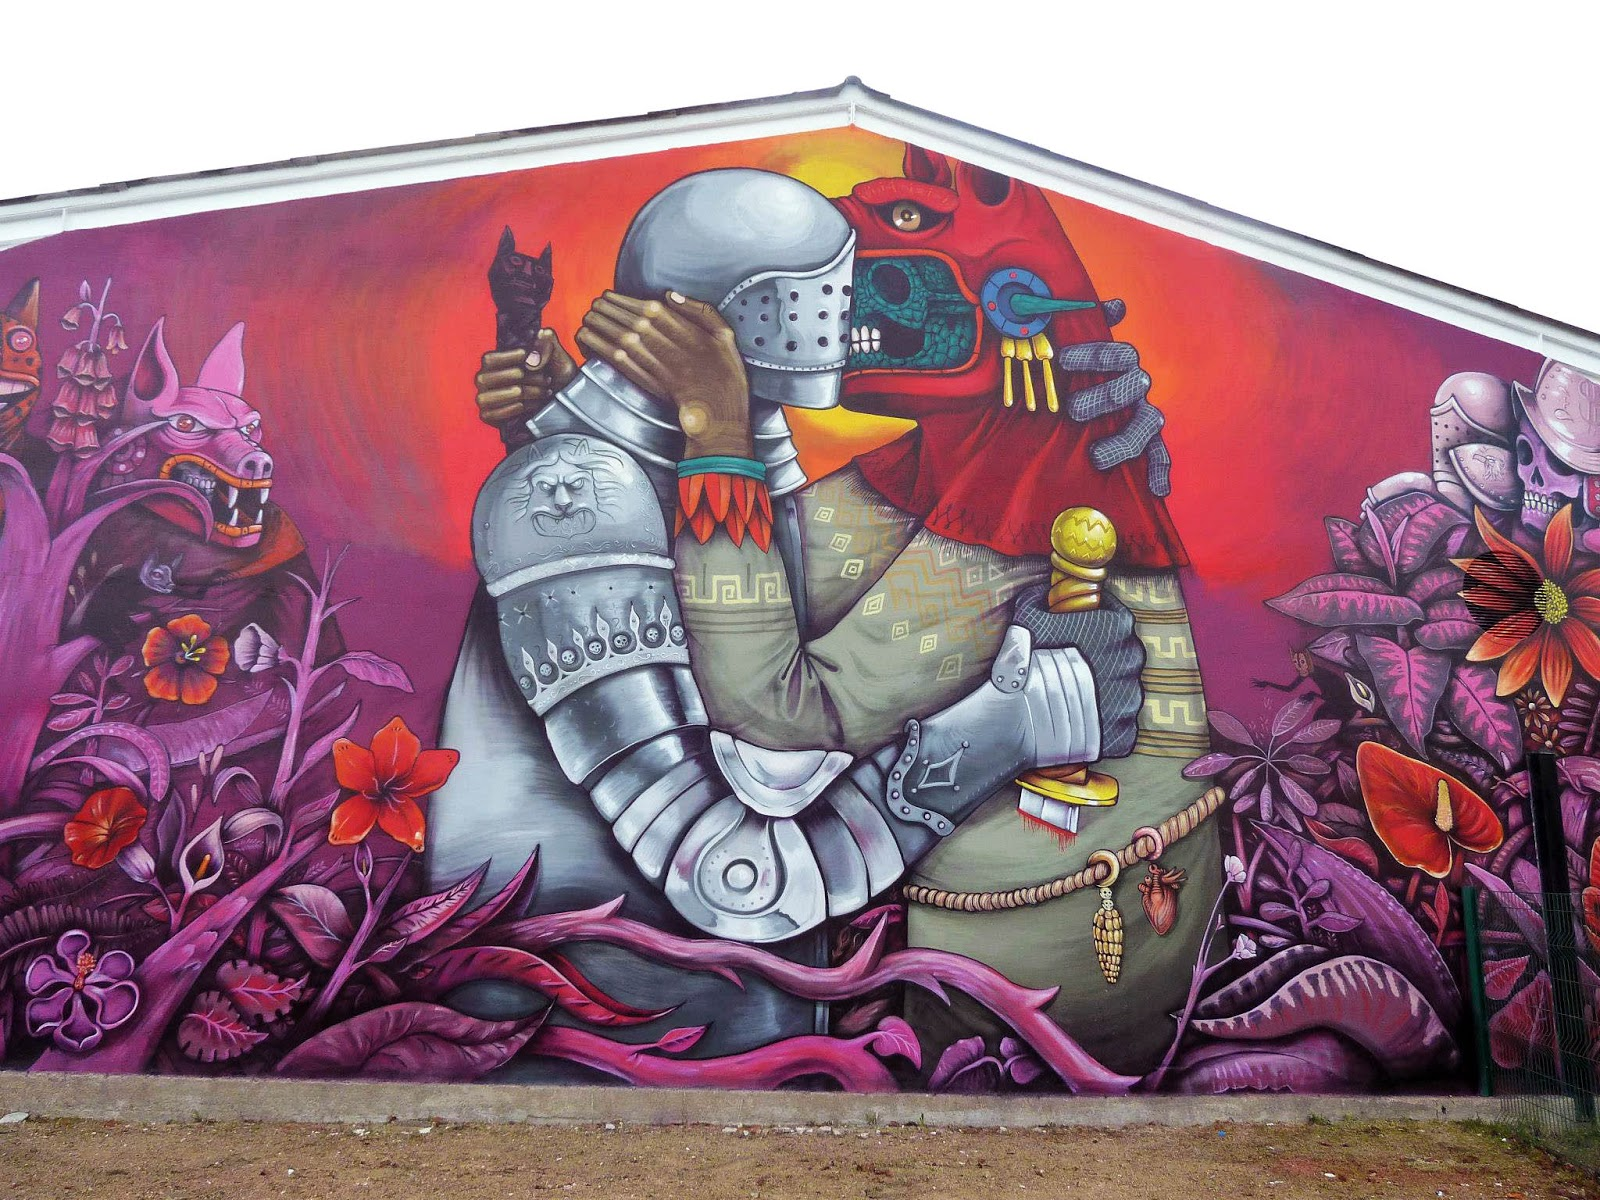 Saner new mural in fleury les aubrais france for Arte mural en mexico